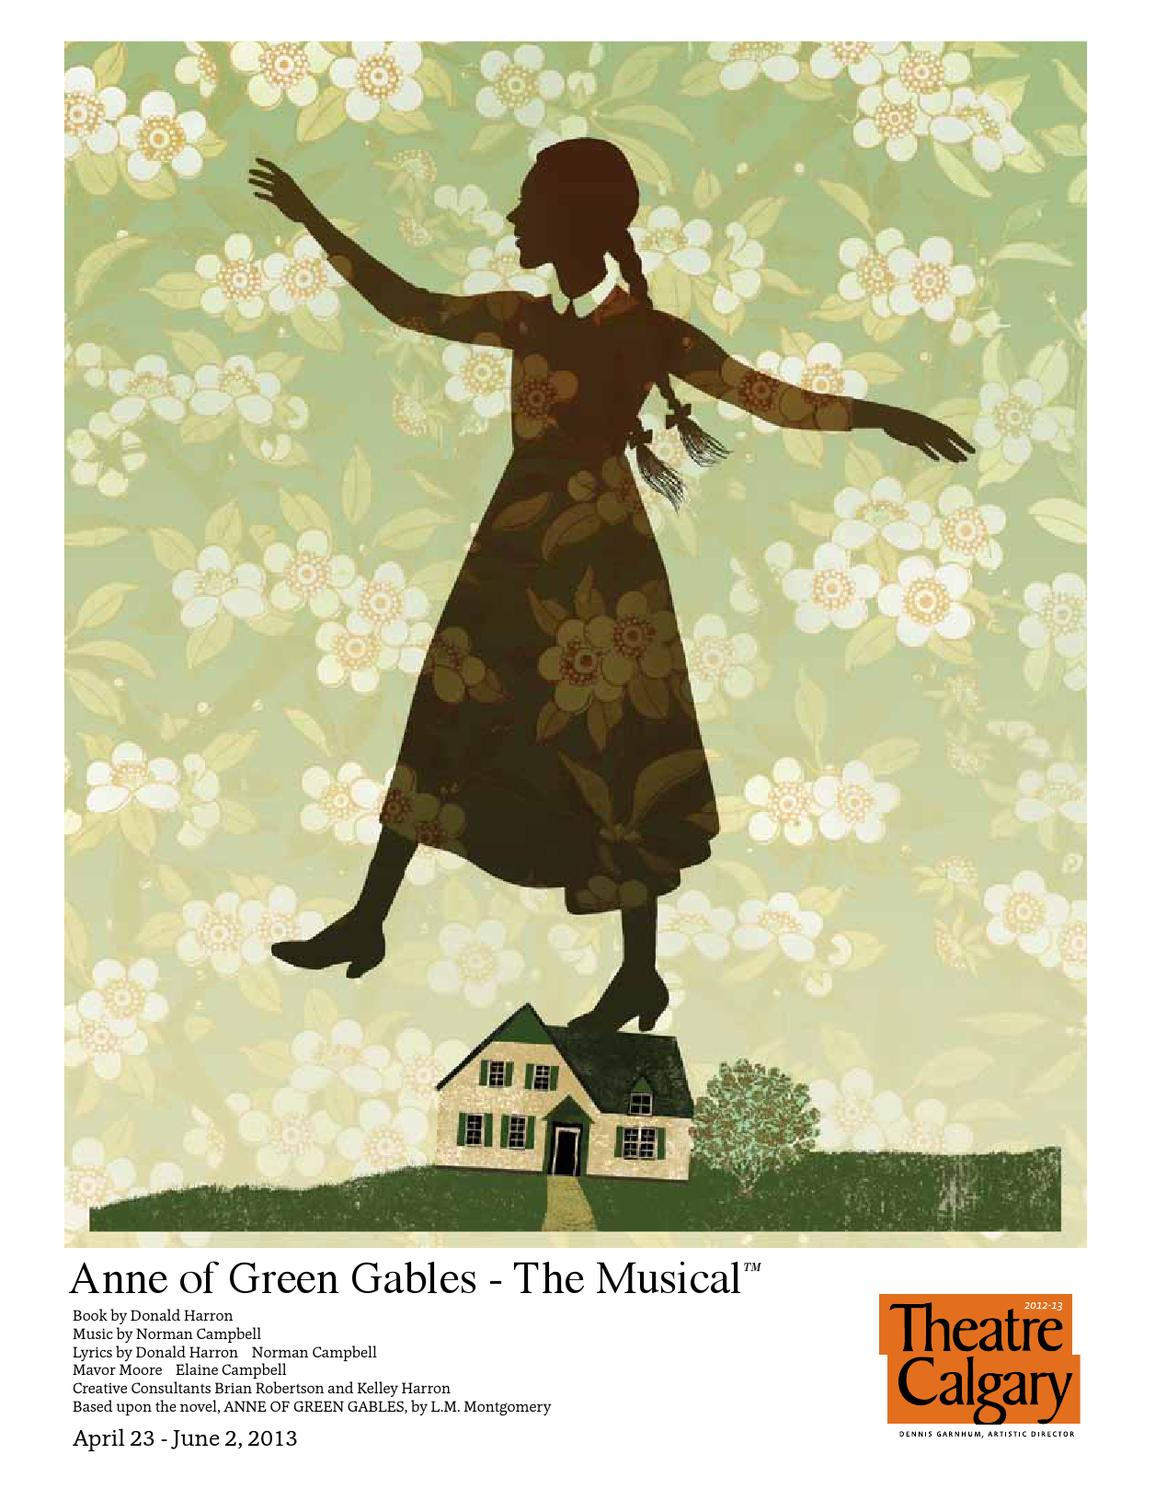 The House Programme From Theatre Calgary's Anne Of Green Gables  The  Musical By Theatre Calgary  Issuu